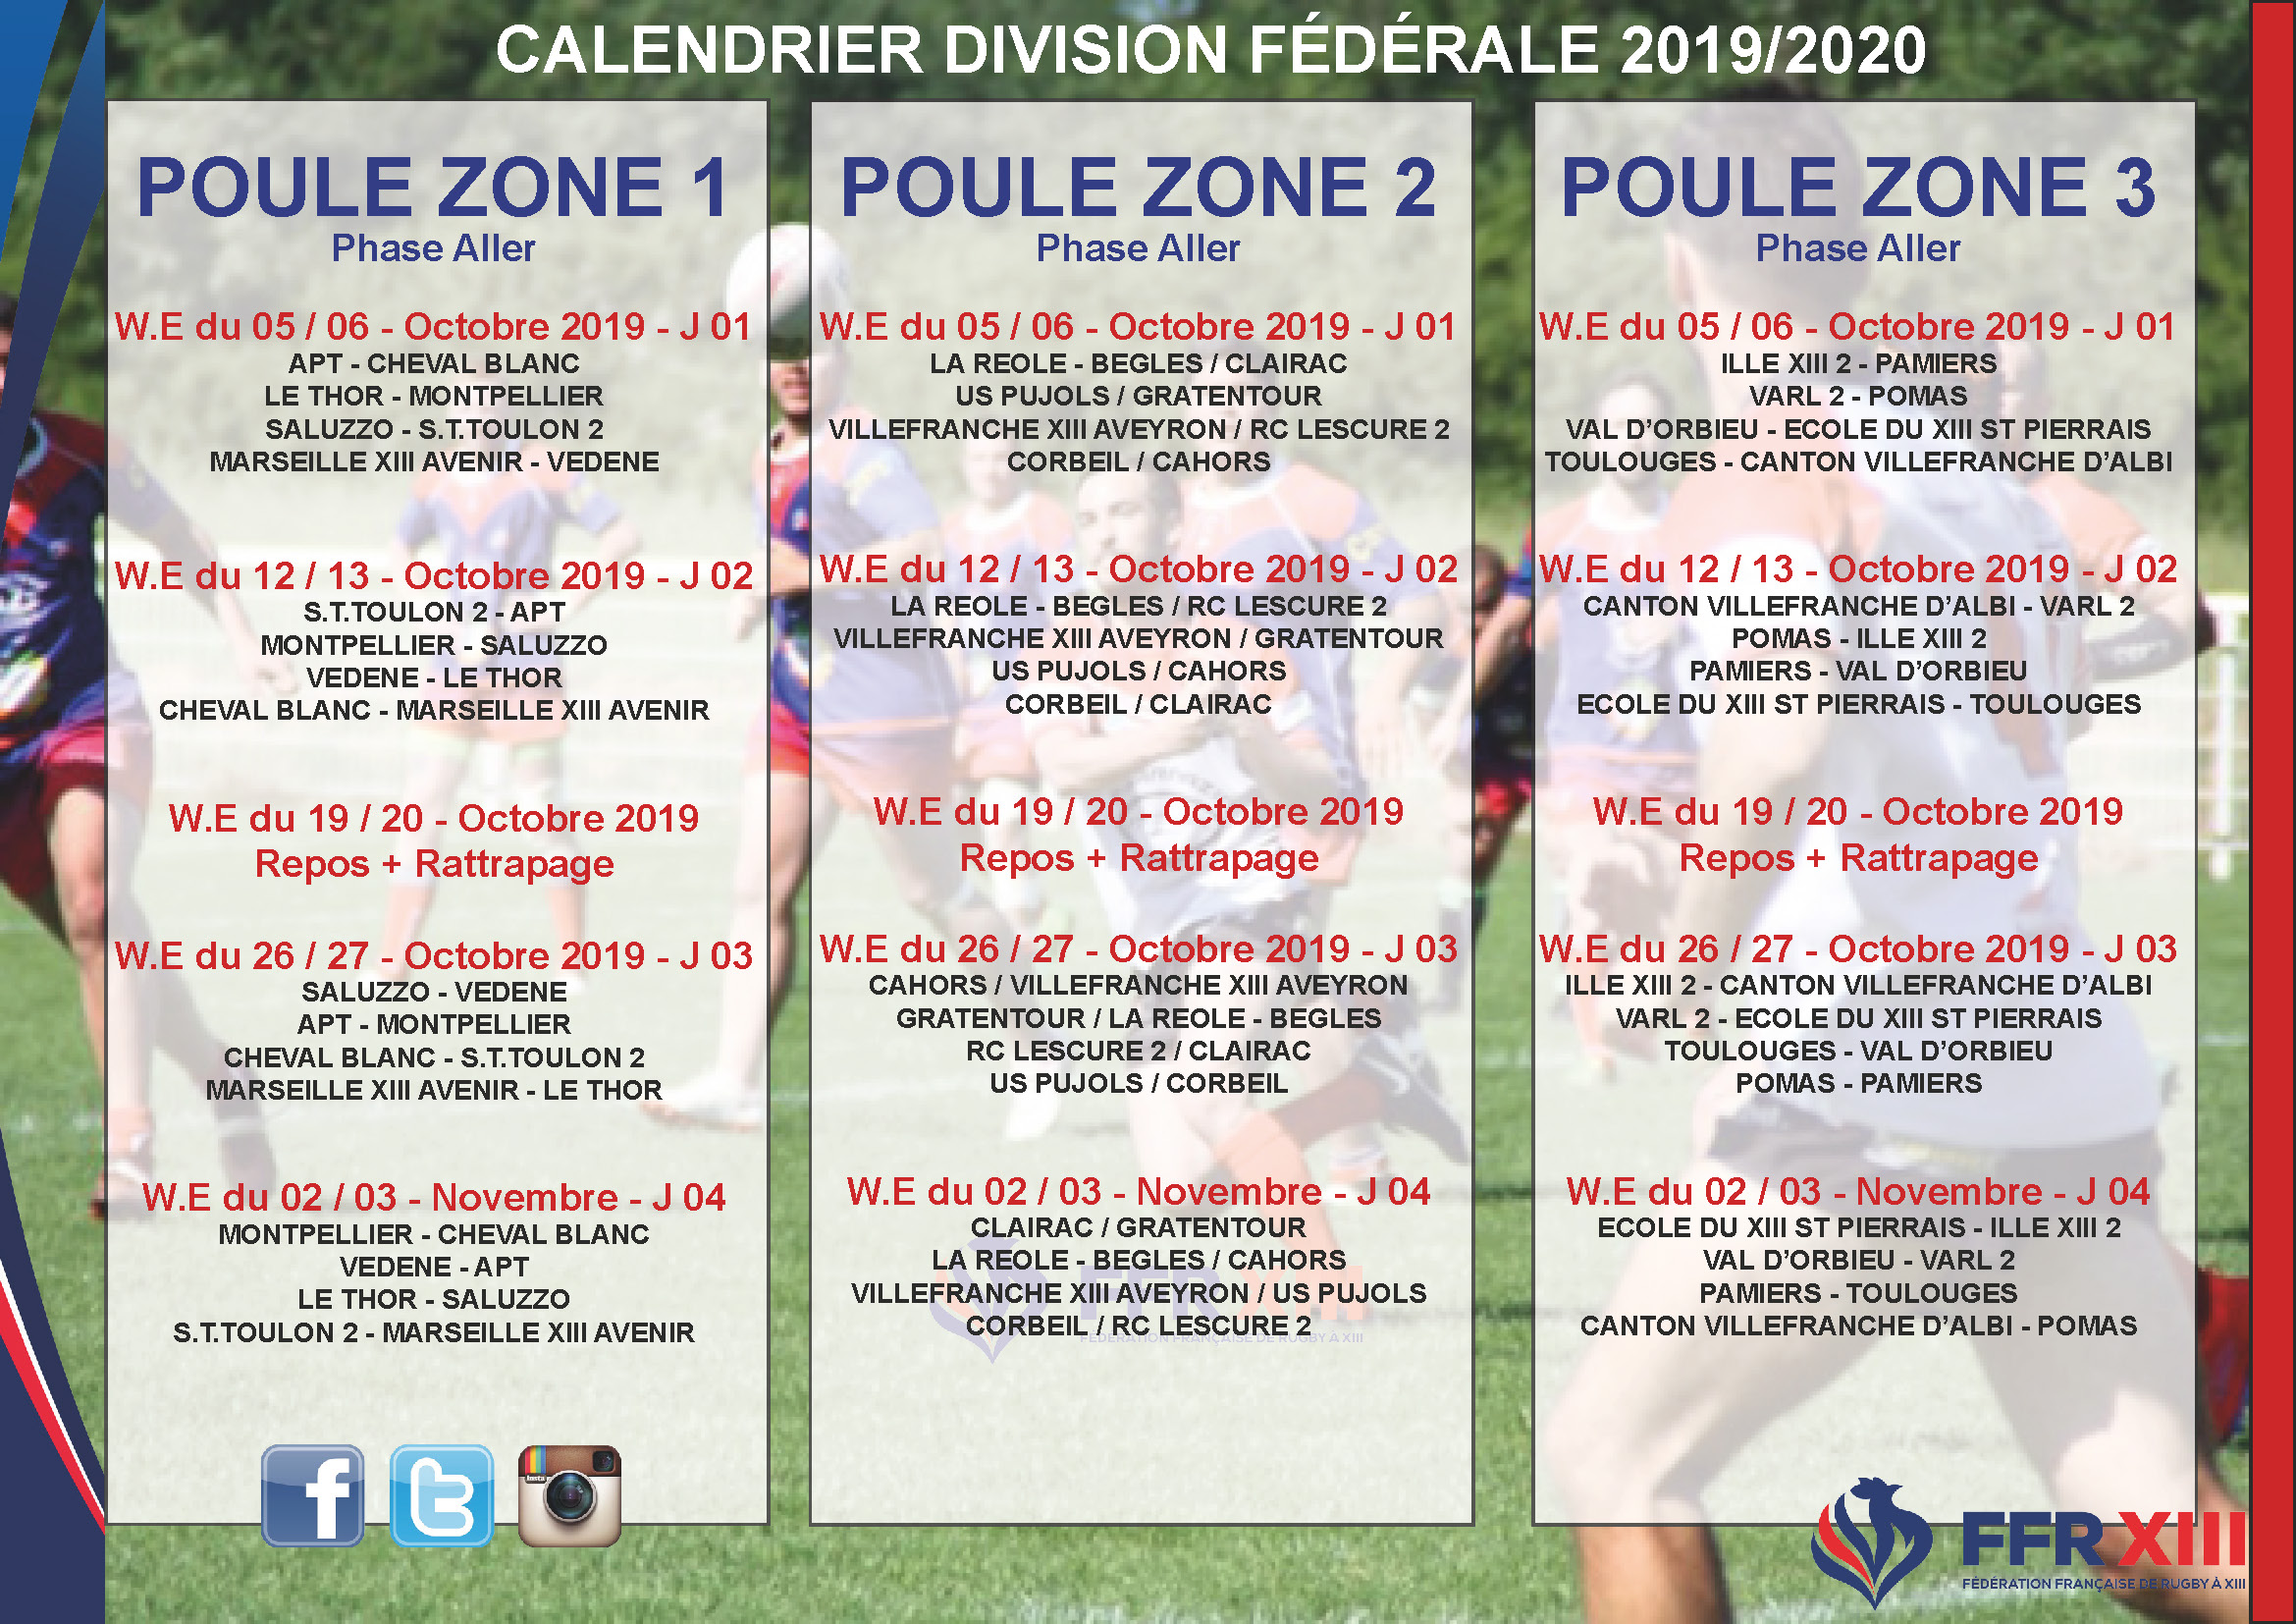 Calendrier 2020 Rugby.Le Calendrier Federale 2019 2020 Est Disponible Federation